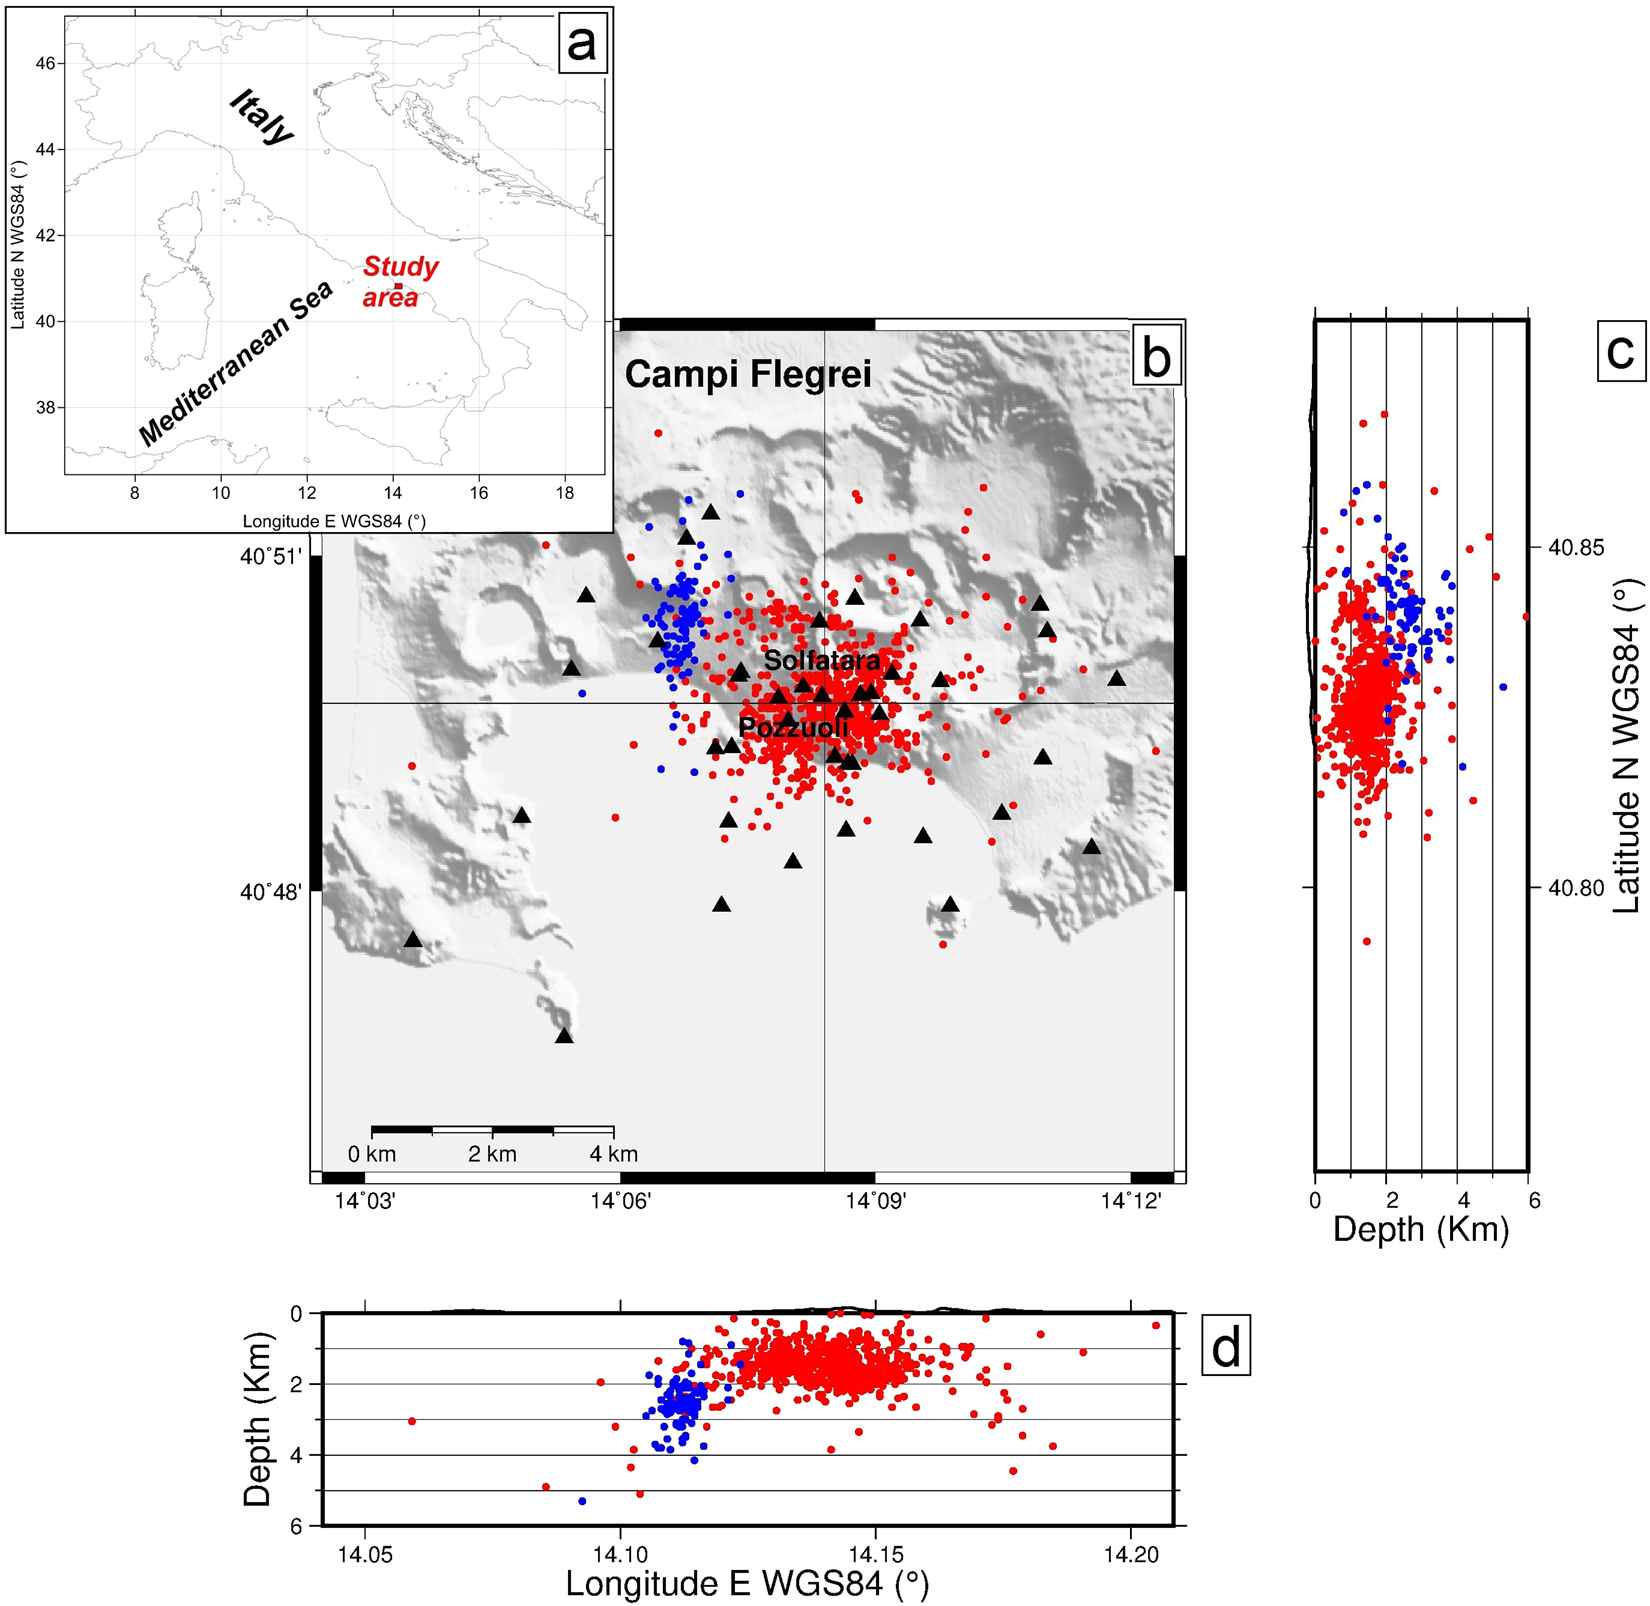 Tidal And Hydrological Periodicities Of Seismicity Reveal New Risk